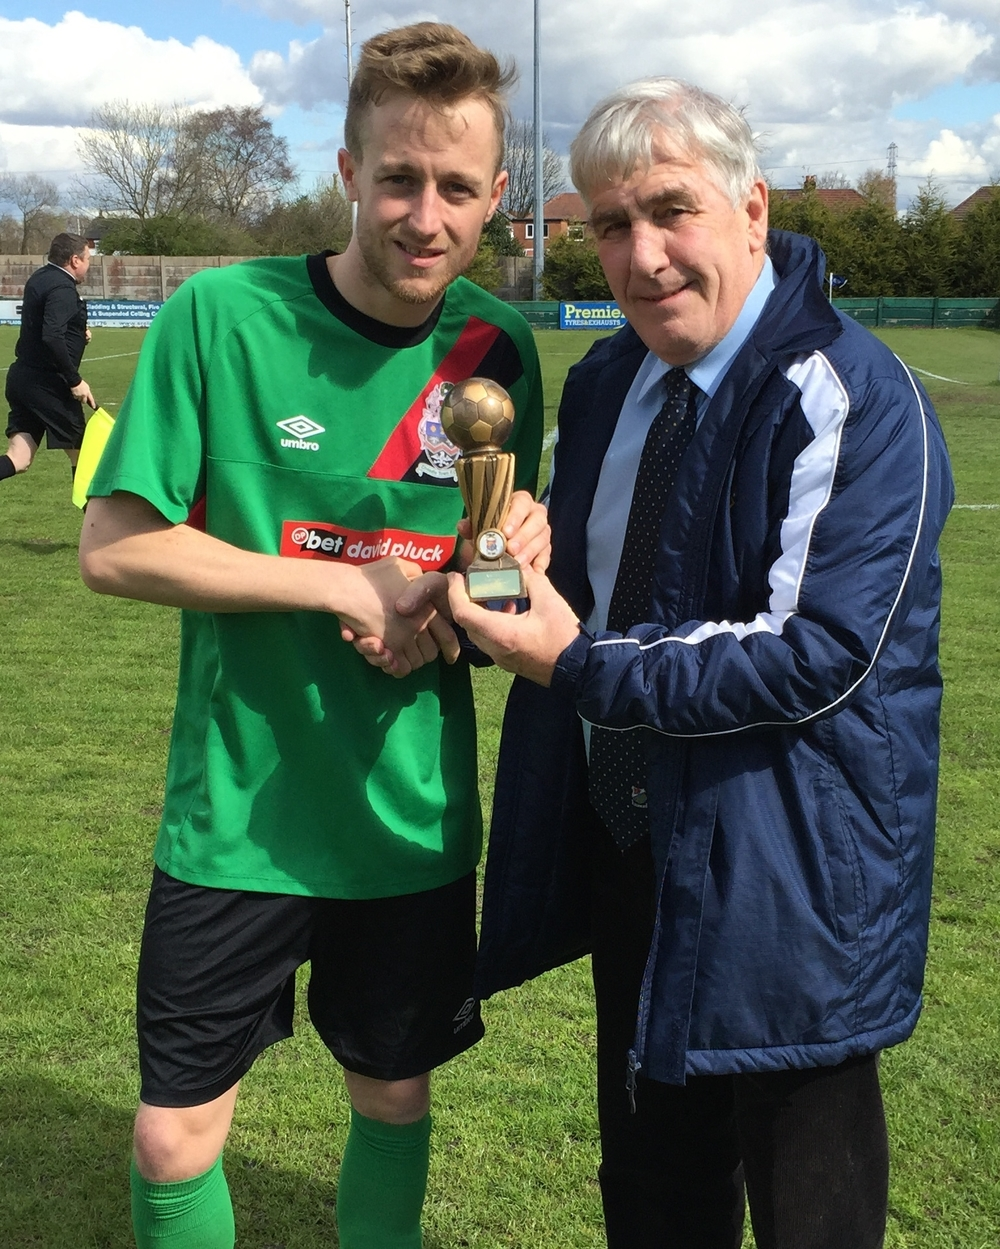 Before the match, Mike Sherrington received his NWCFL Player of the Month award from the league's very own Geoff Wilkinson